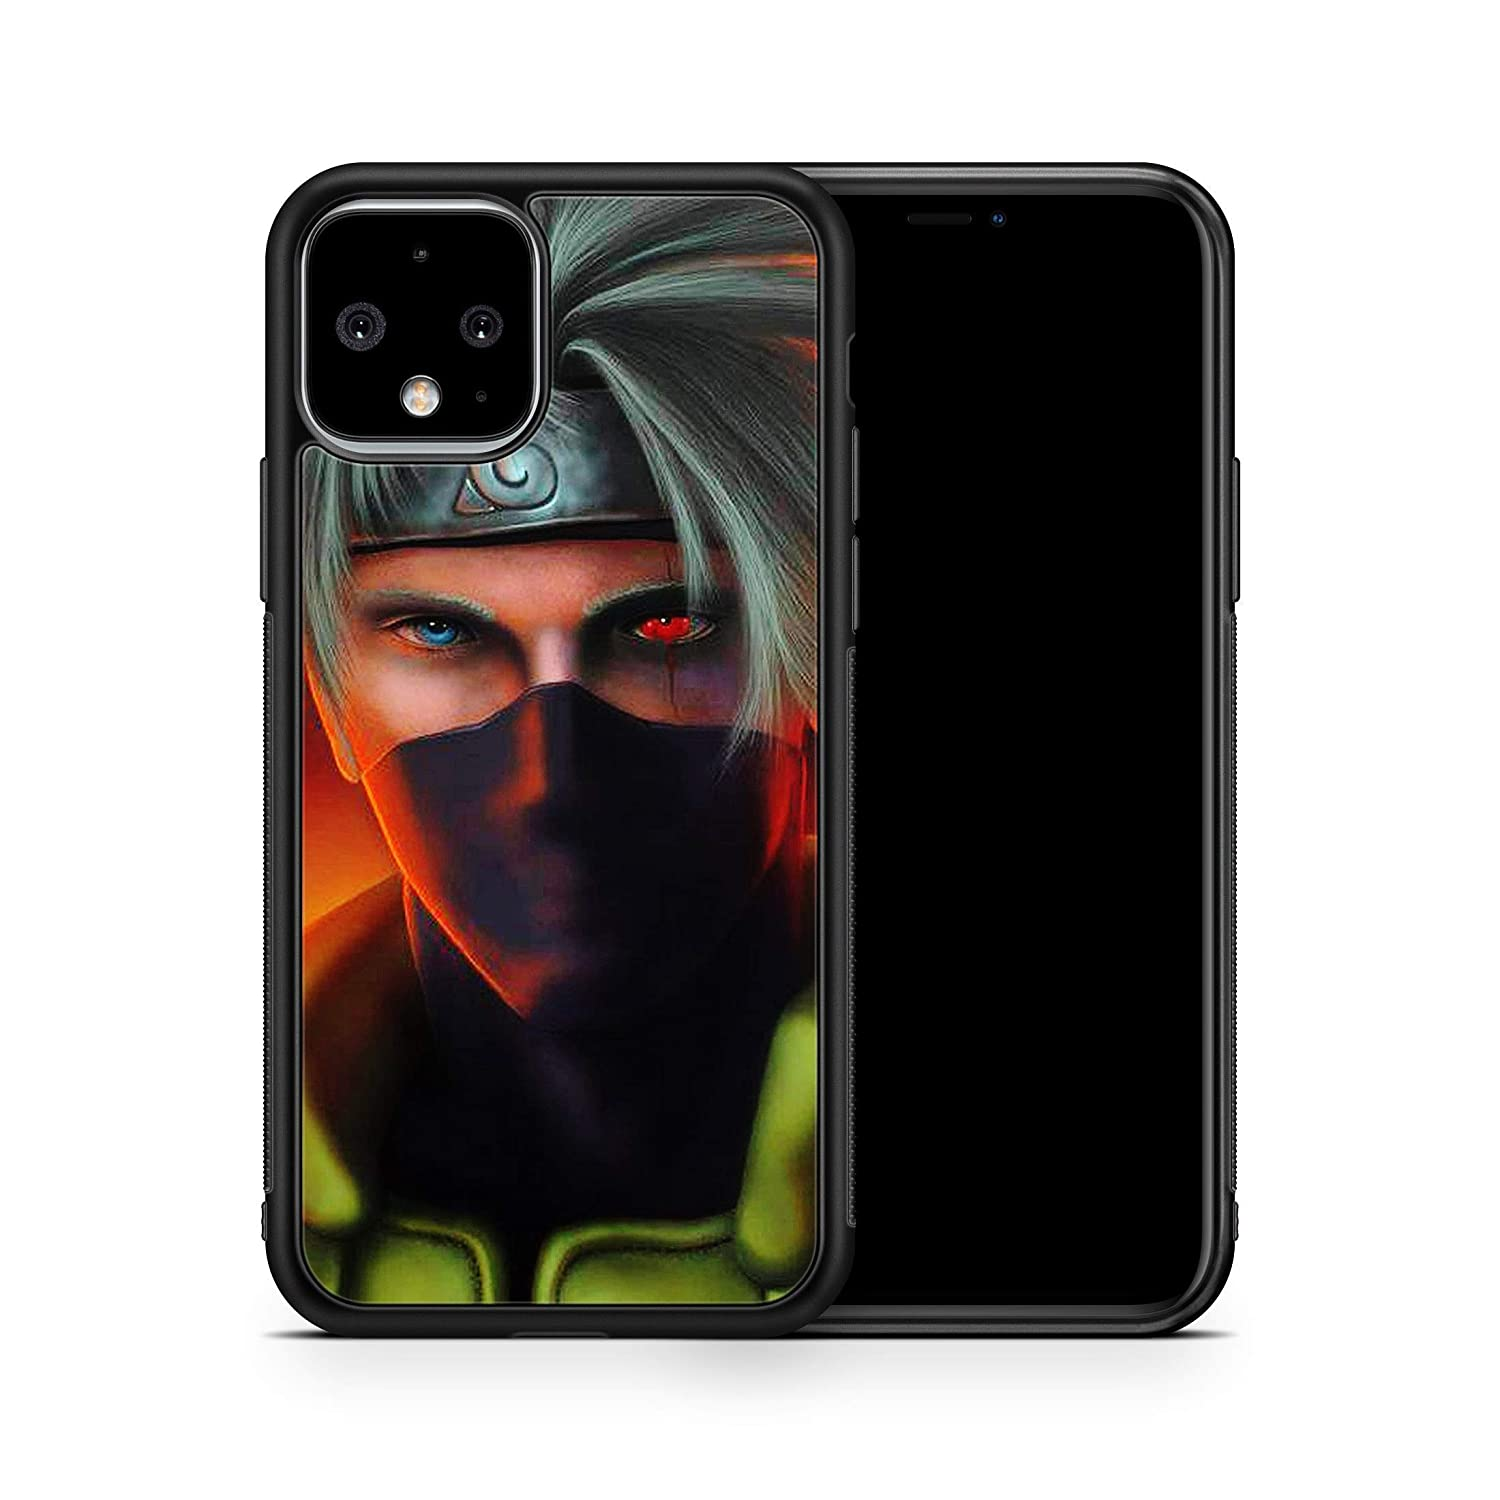 Japanese Gorgeous Anime Case Many popular brands for Google Pixel 5 4A 3A XL 3 4XL 5G 4